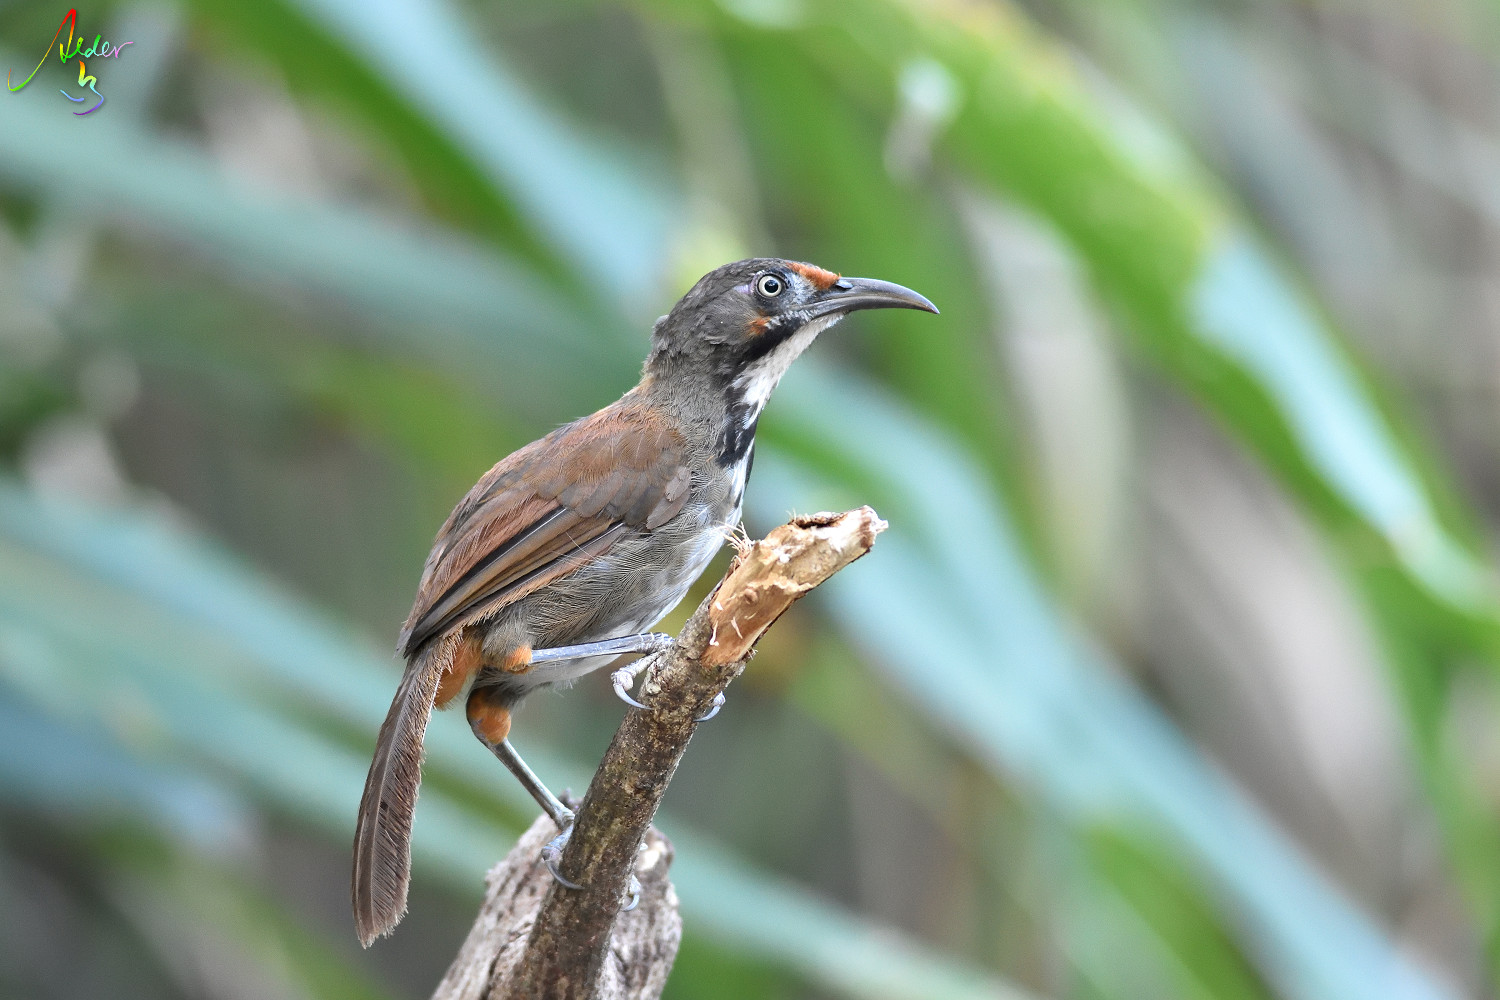 Rusty-cheeked_Scimitar_Babbler_5036